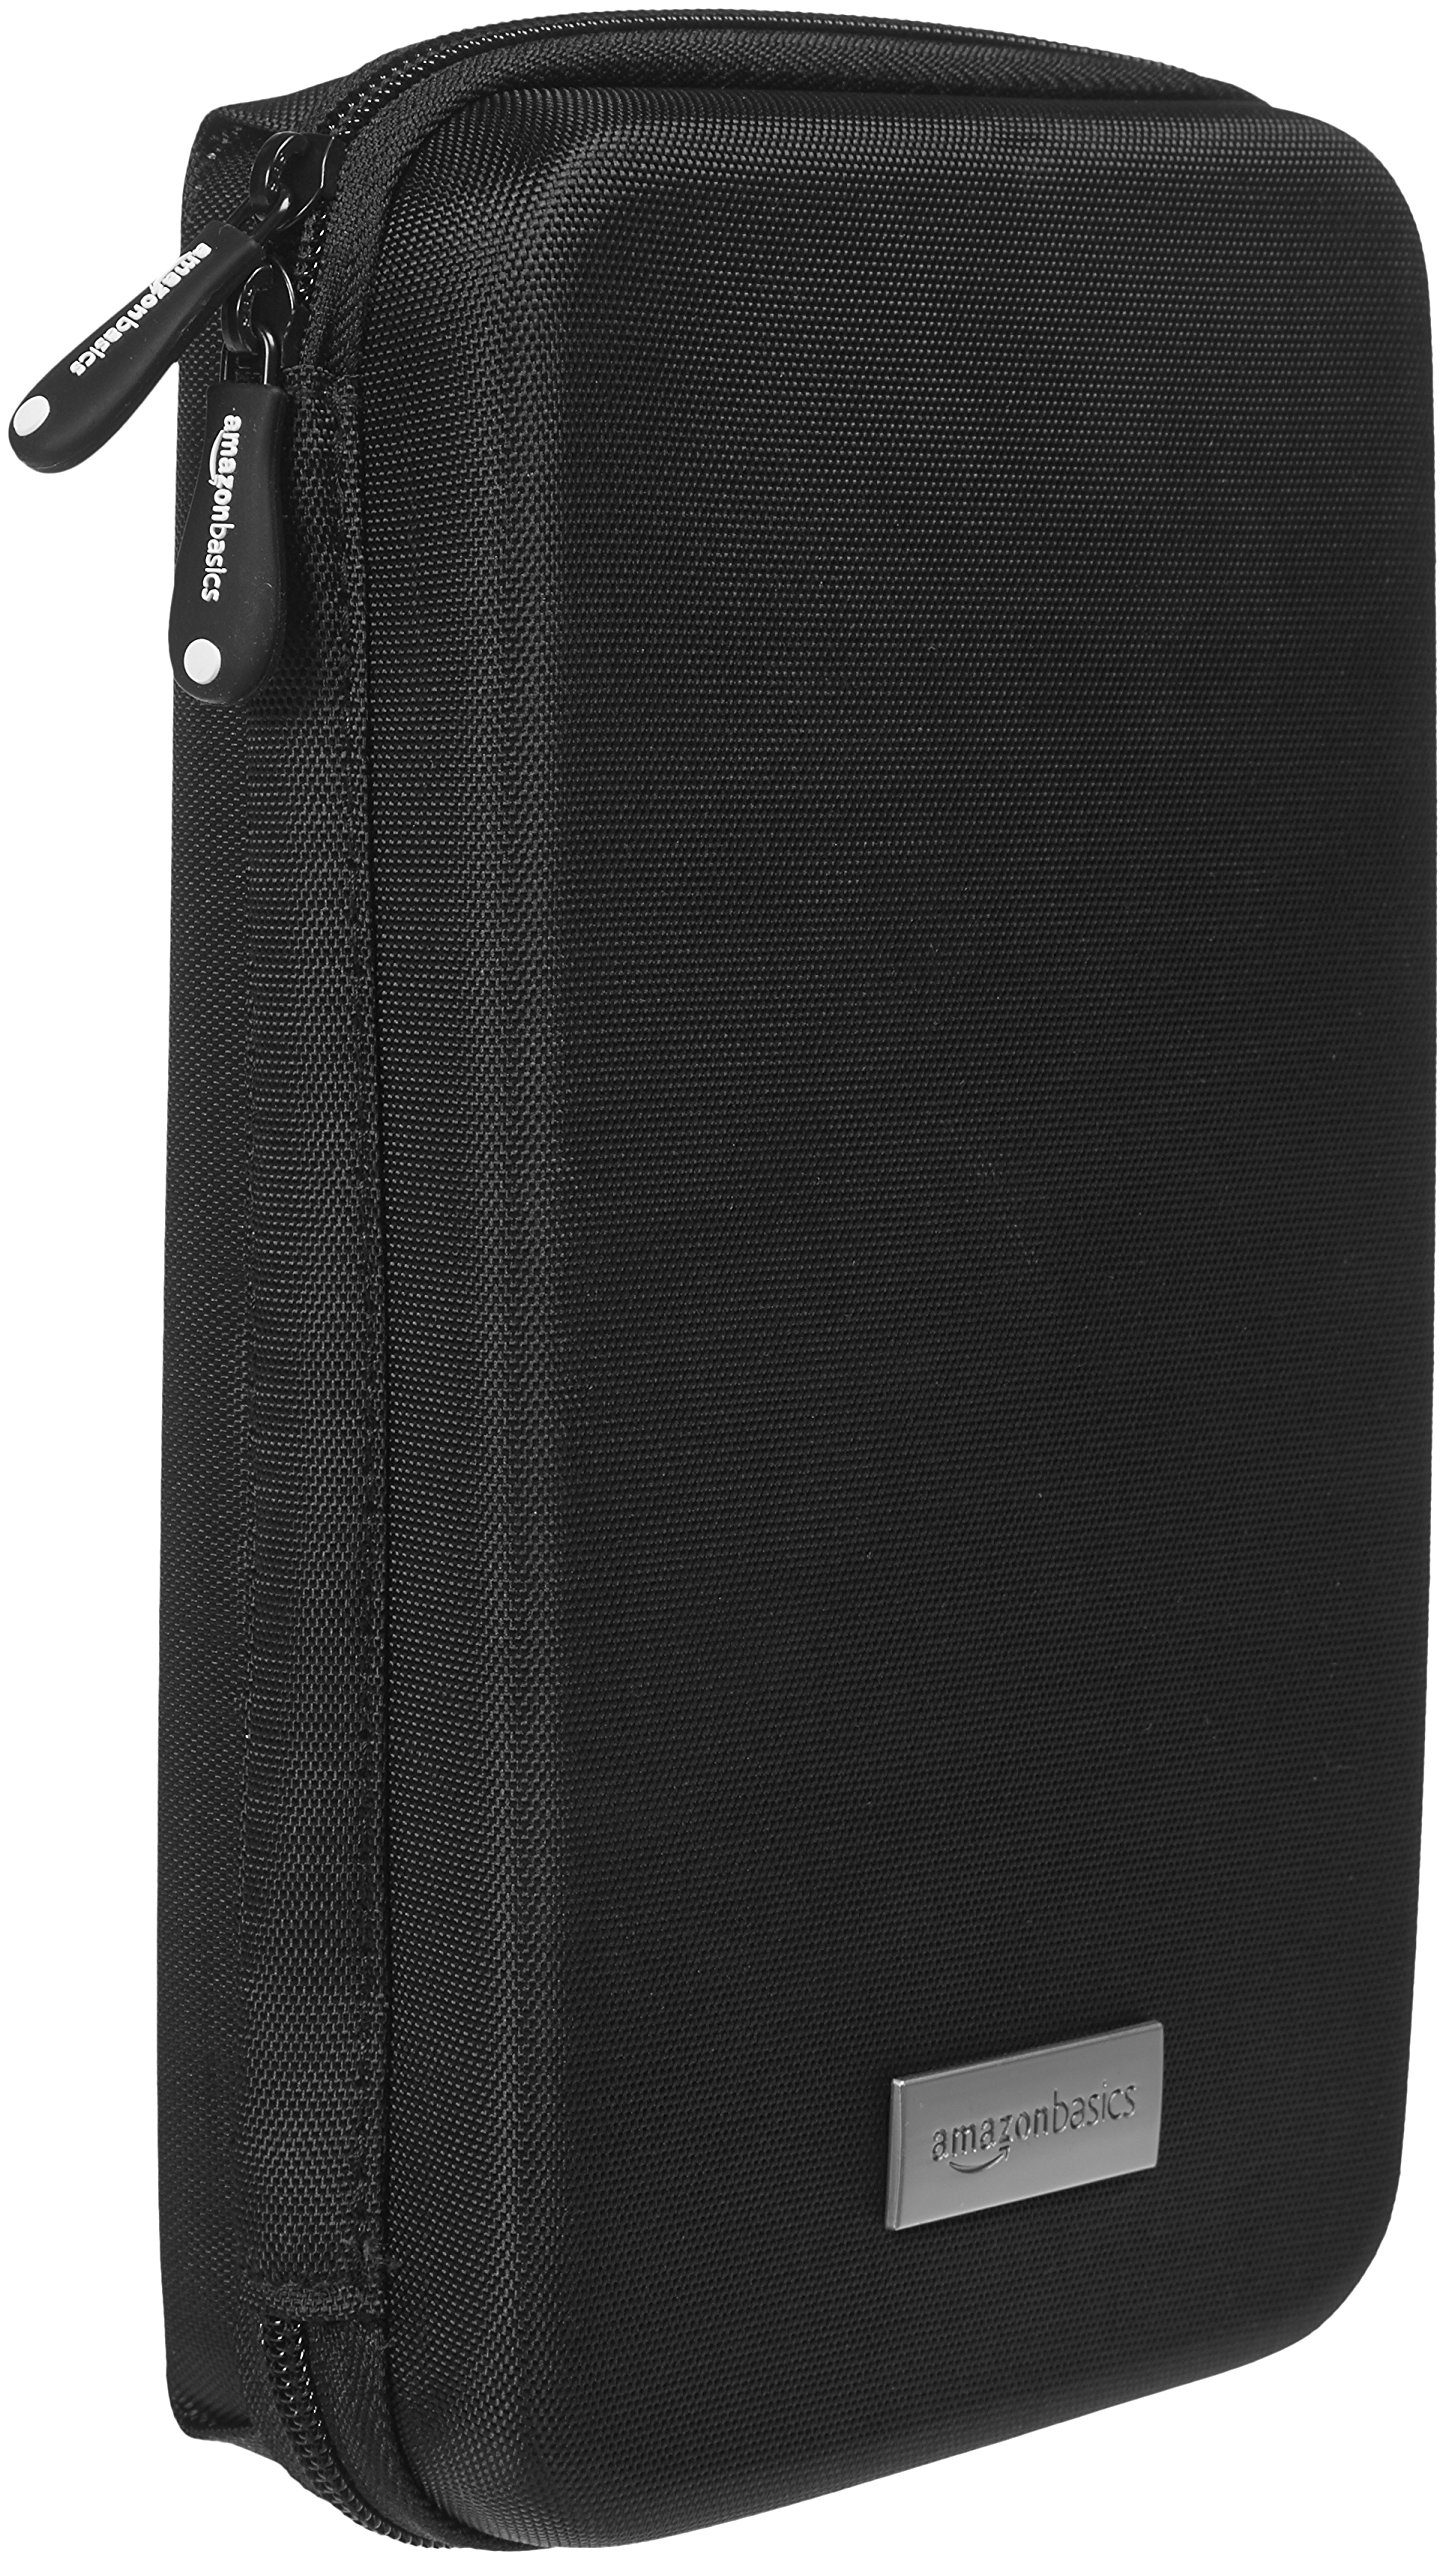 AmazonBasics Universal Travel Case for Small Electronics and Accessories (Black) product image